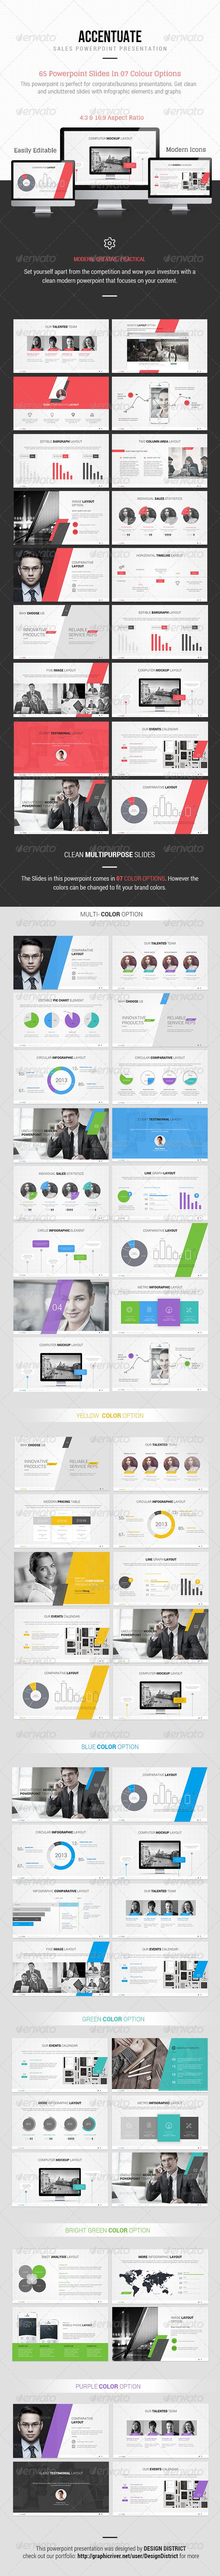 39 best ppt images on pinterest presentation design layout design